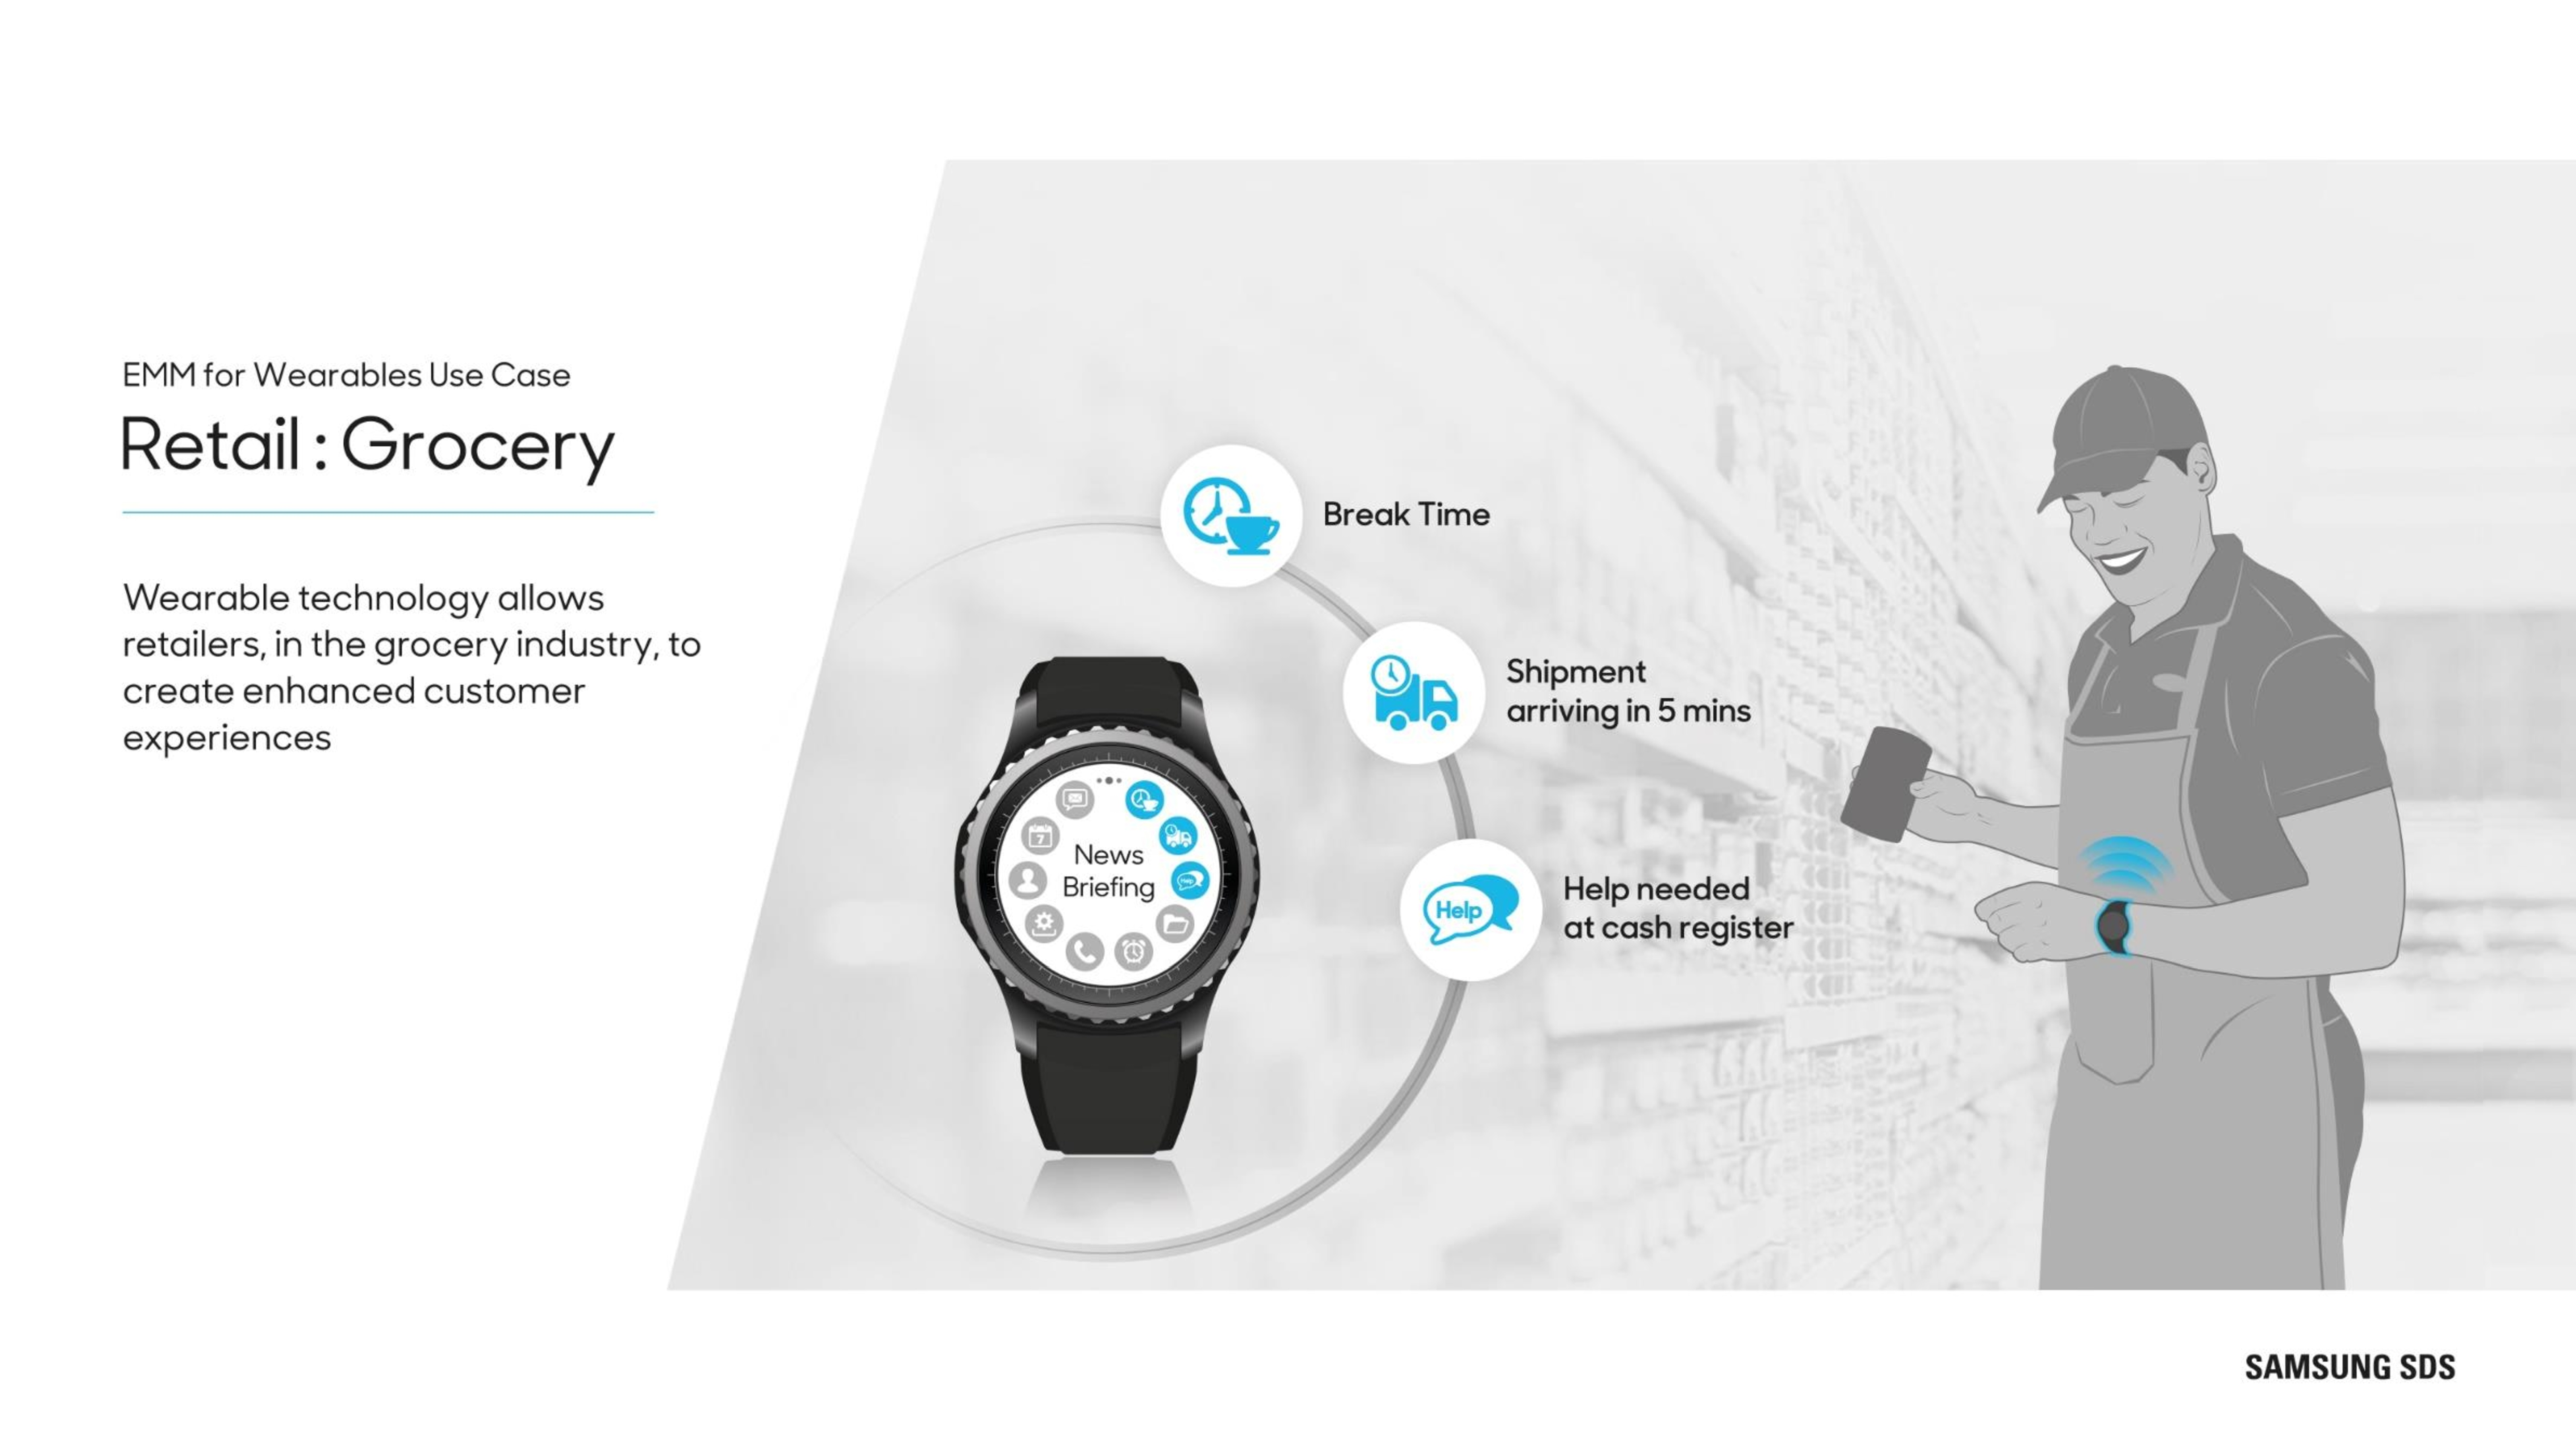 Wearables in Retail Wearable technology allows retailers, in the grocery industry, to create enhanced customer experiences